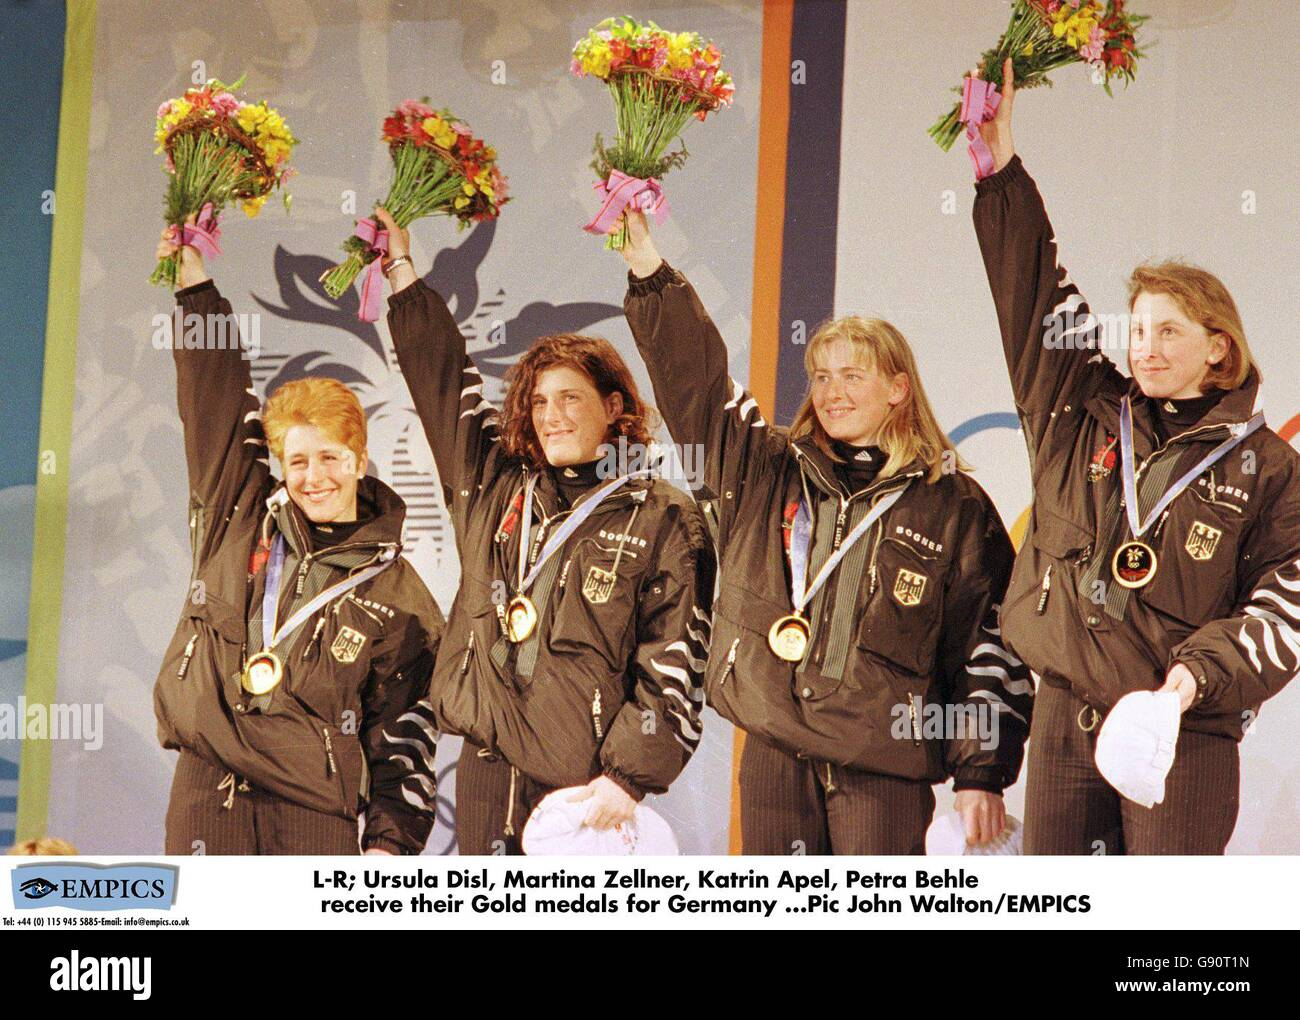 Martina Zellner medal ceremony winter olympics nagano 1998 biathlon stock